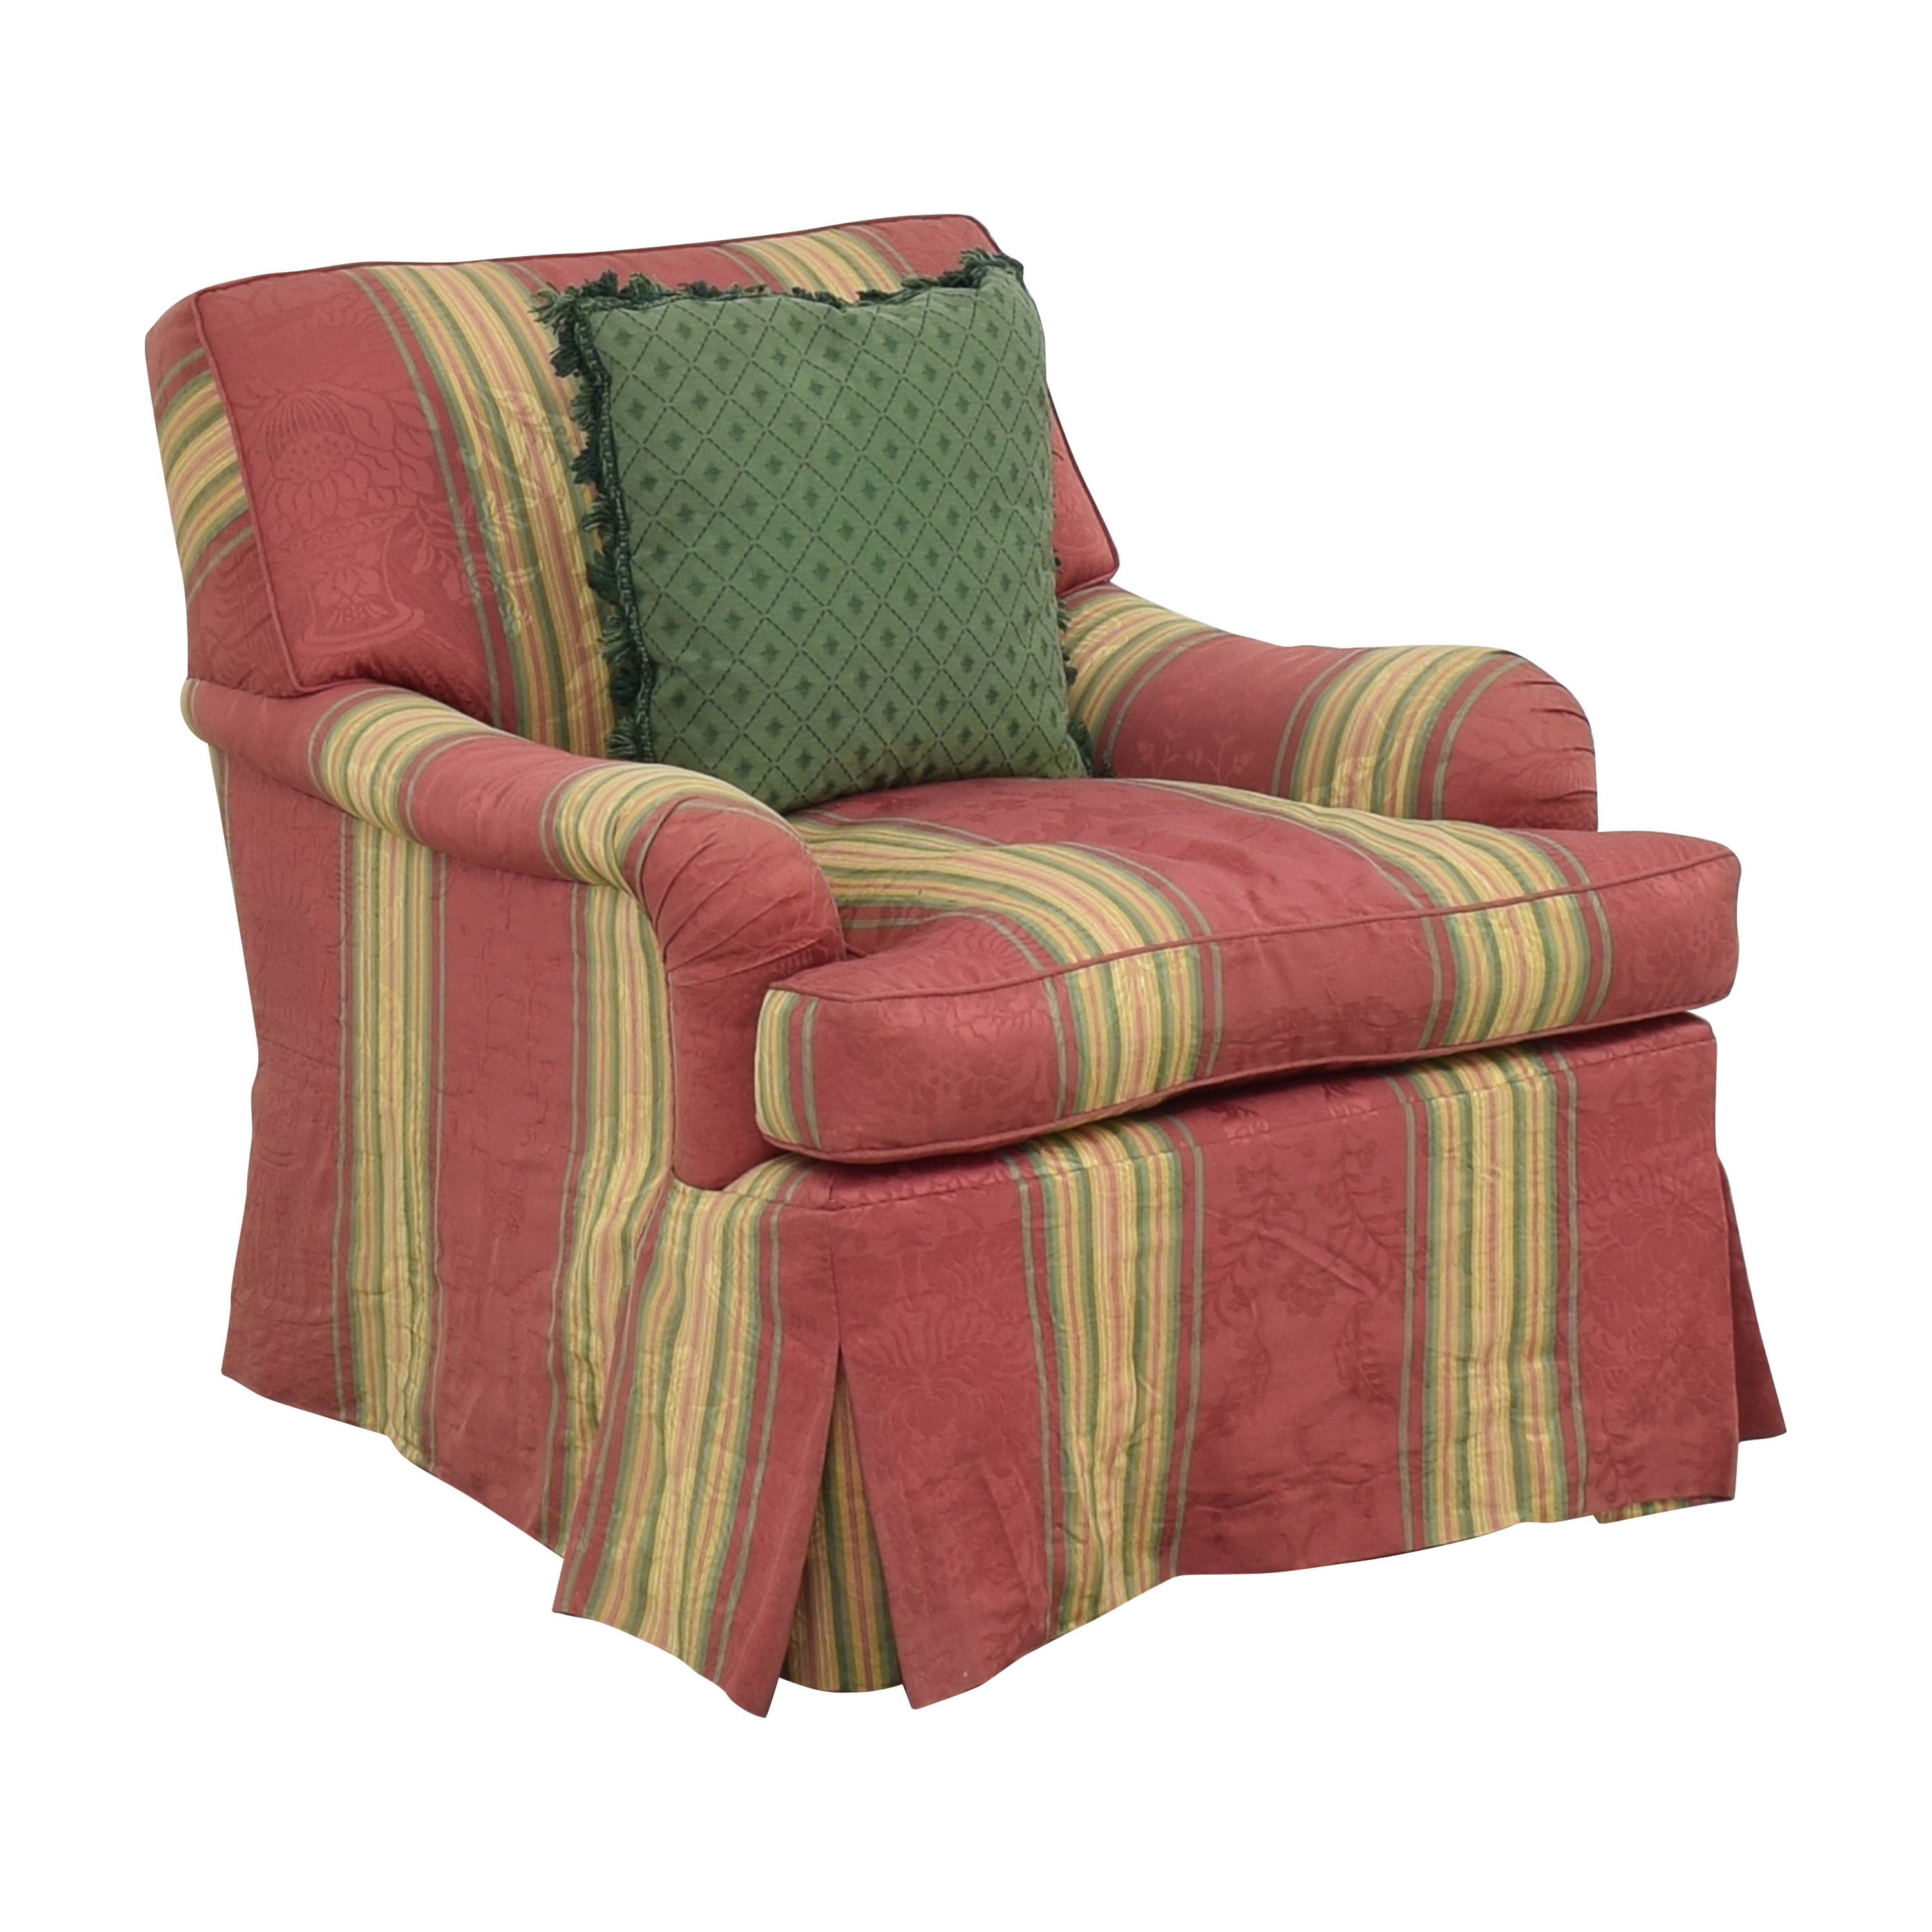 Bridgewater Accent Chair used